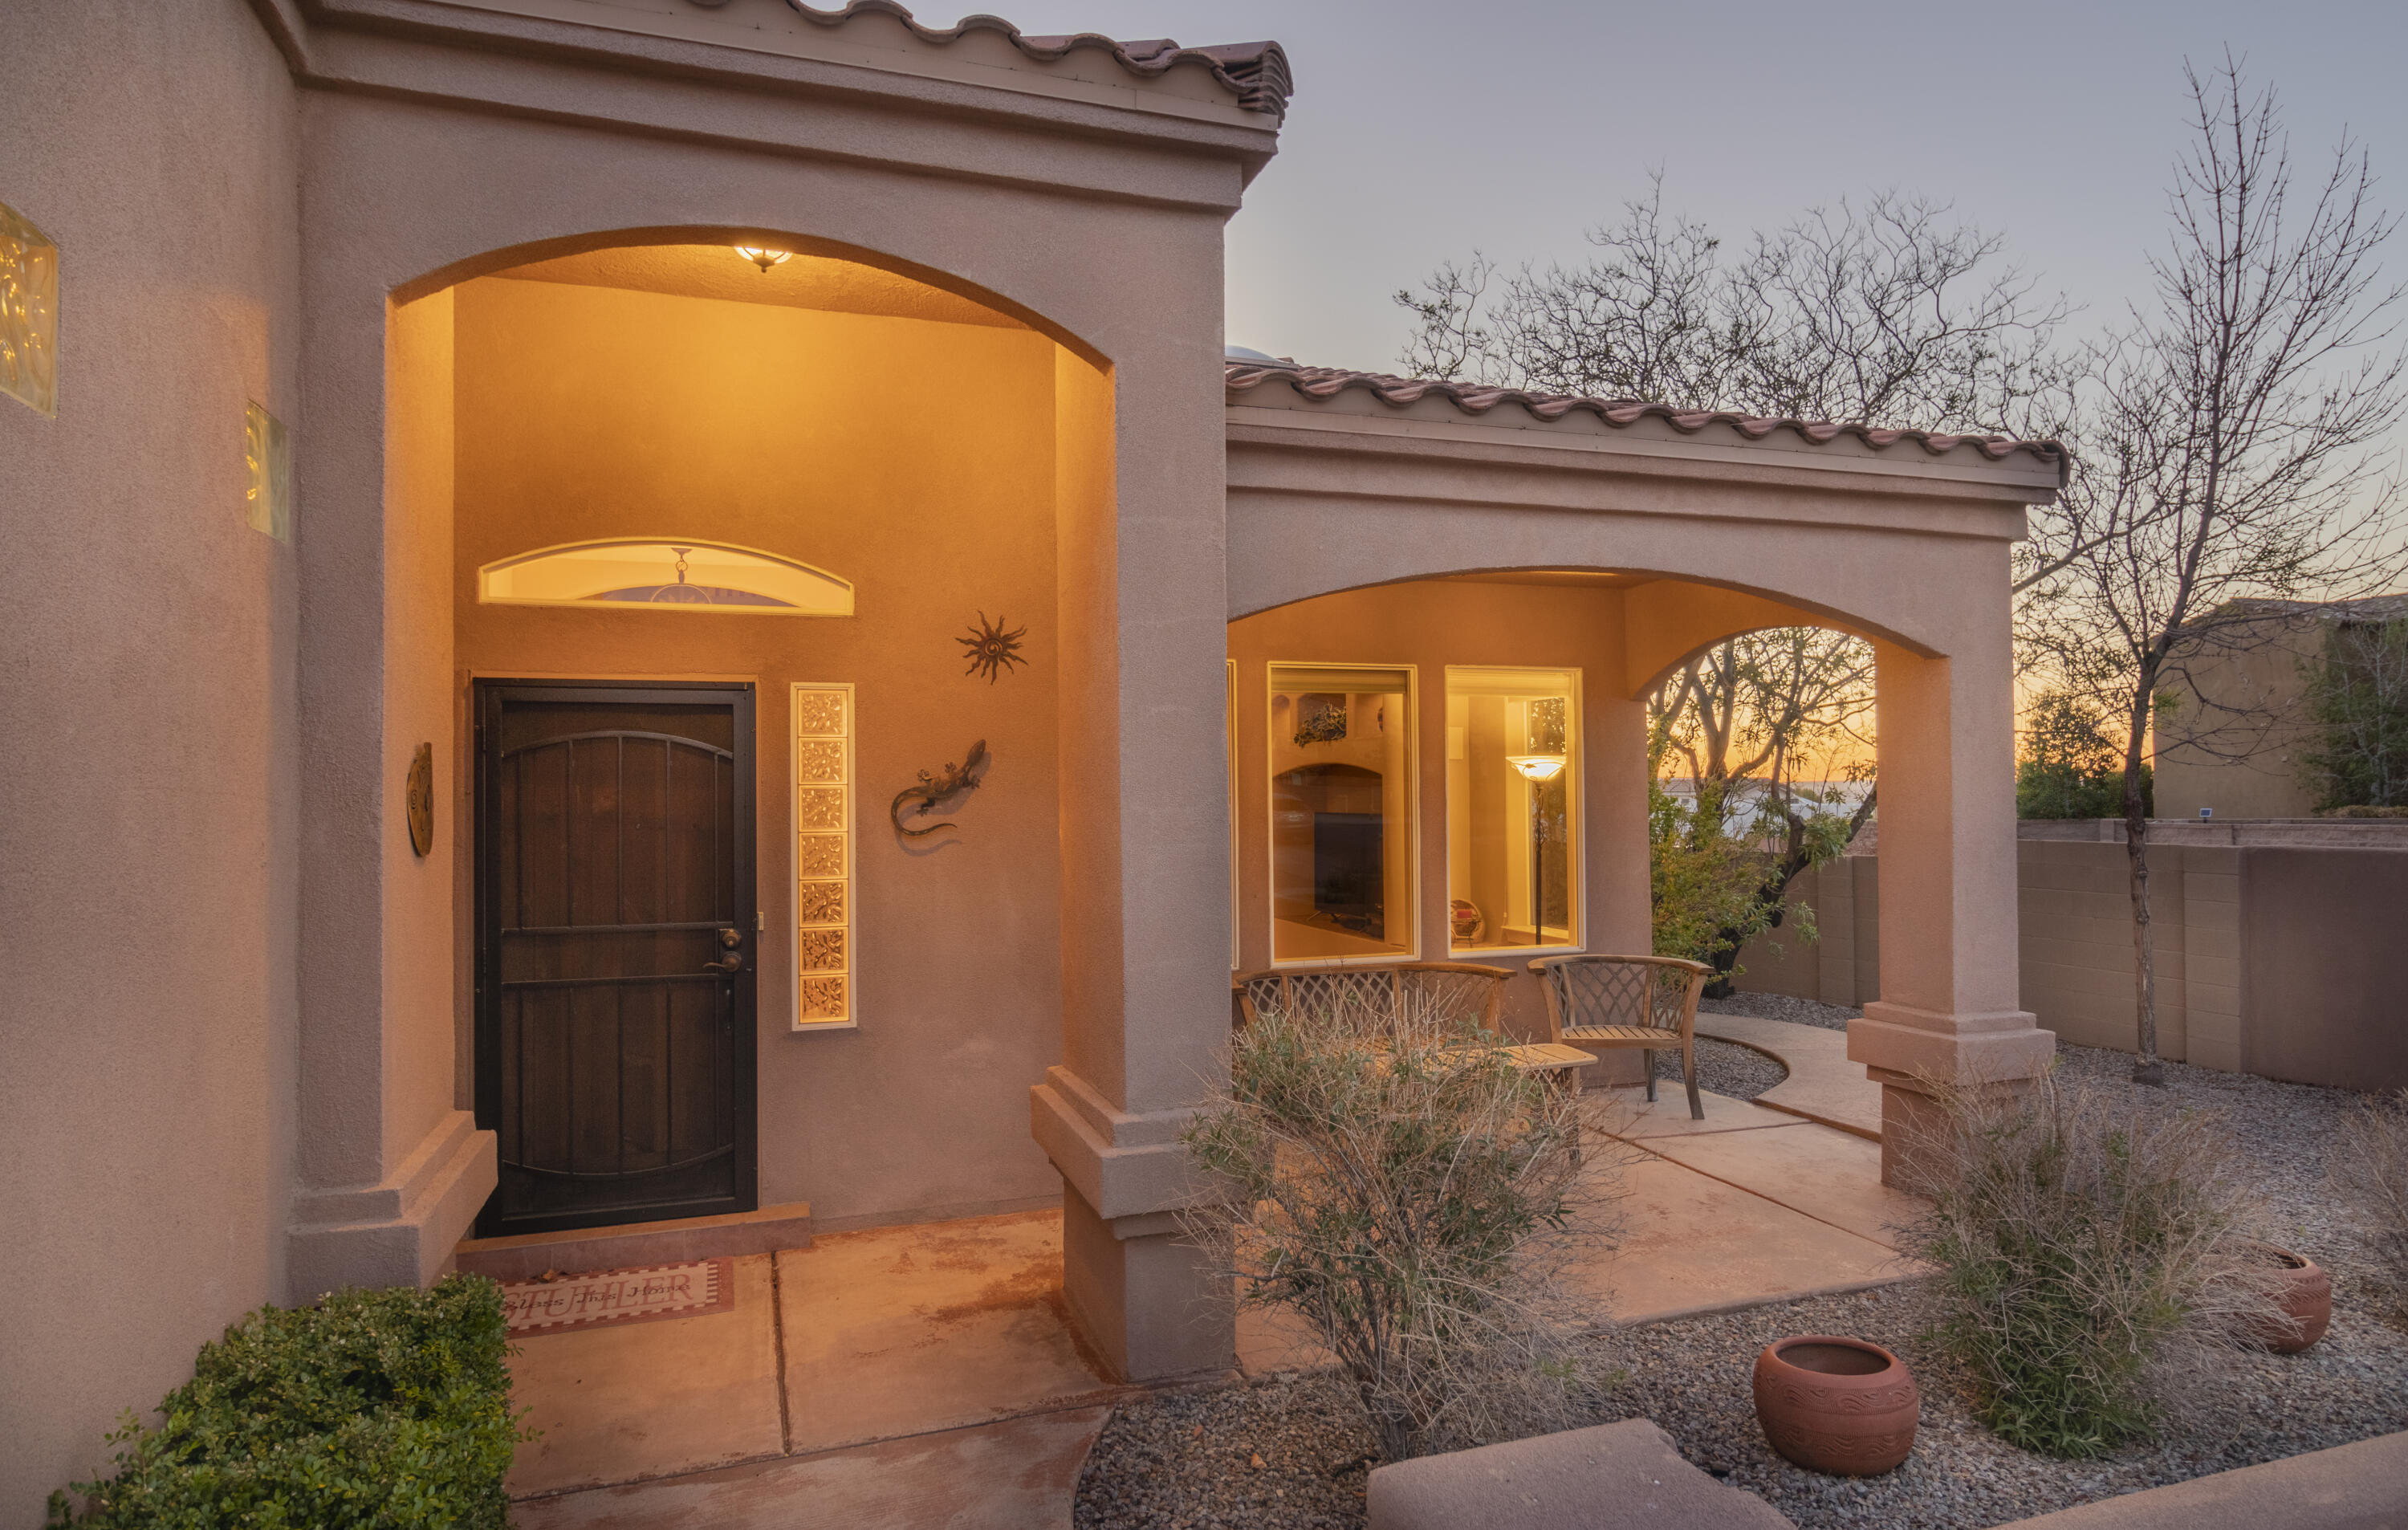 Open Saturday, May 15 th , 1-3 pm. Welcome home! This rare and stunning home sitson a corner lot and quiet cul-de-sac street. This is a west Albuquerque Acres 2,661 sq. ft beauty on abeautifully landscaped 0.30 acres. Enjoy the open floorplan, natural light and gorgeous high ceilings.There are 4 bedrooms, a loft, 2 1/2 bathrooms and finished 3 car garage. A private deck and mountainviews are available off the 4 th bedroom. The owner's suite sits on the first floor with a separate entranceinto the immaculately landscaped backyard with mature shade trees. This home even has an enclosedfront courtyard and no HOA! Hurry, this one won't last!